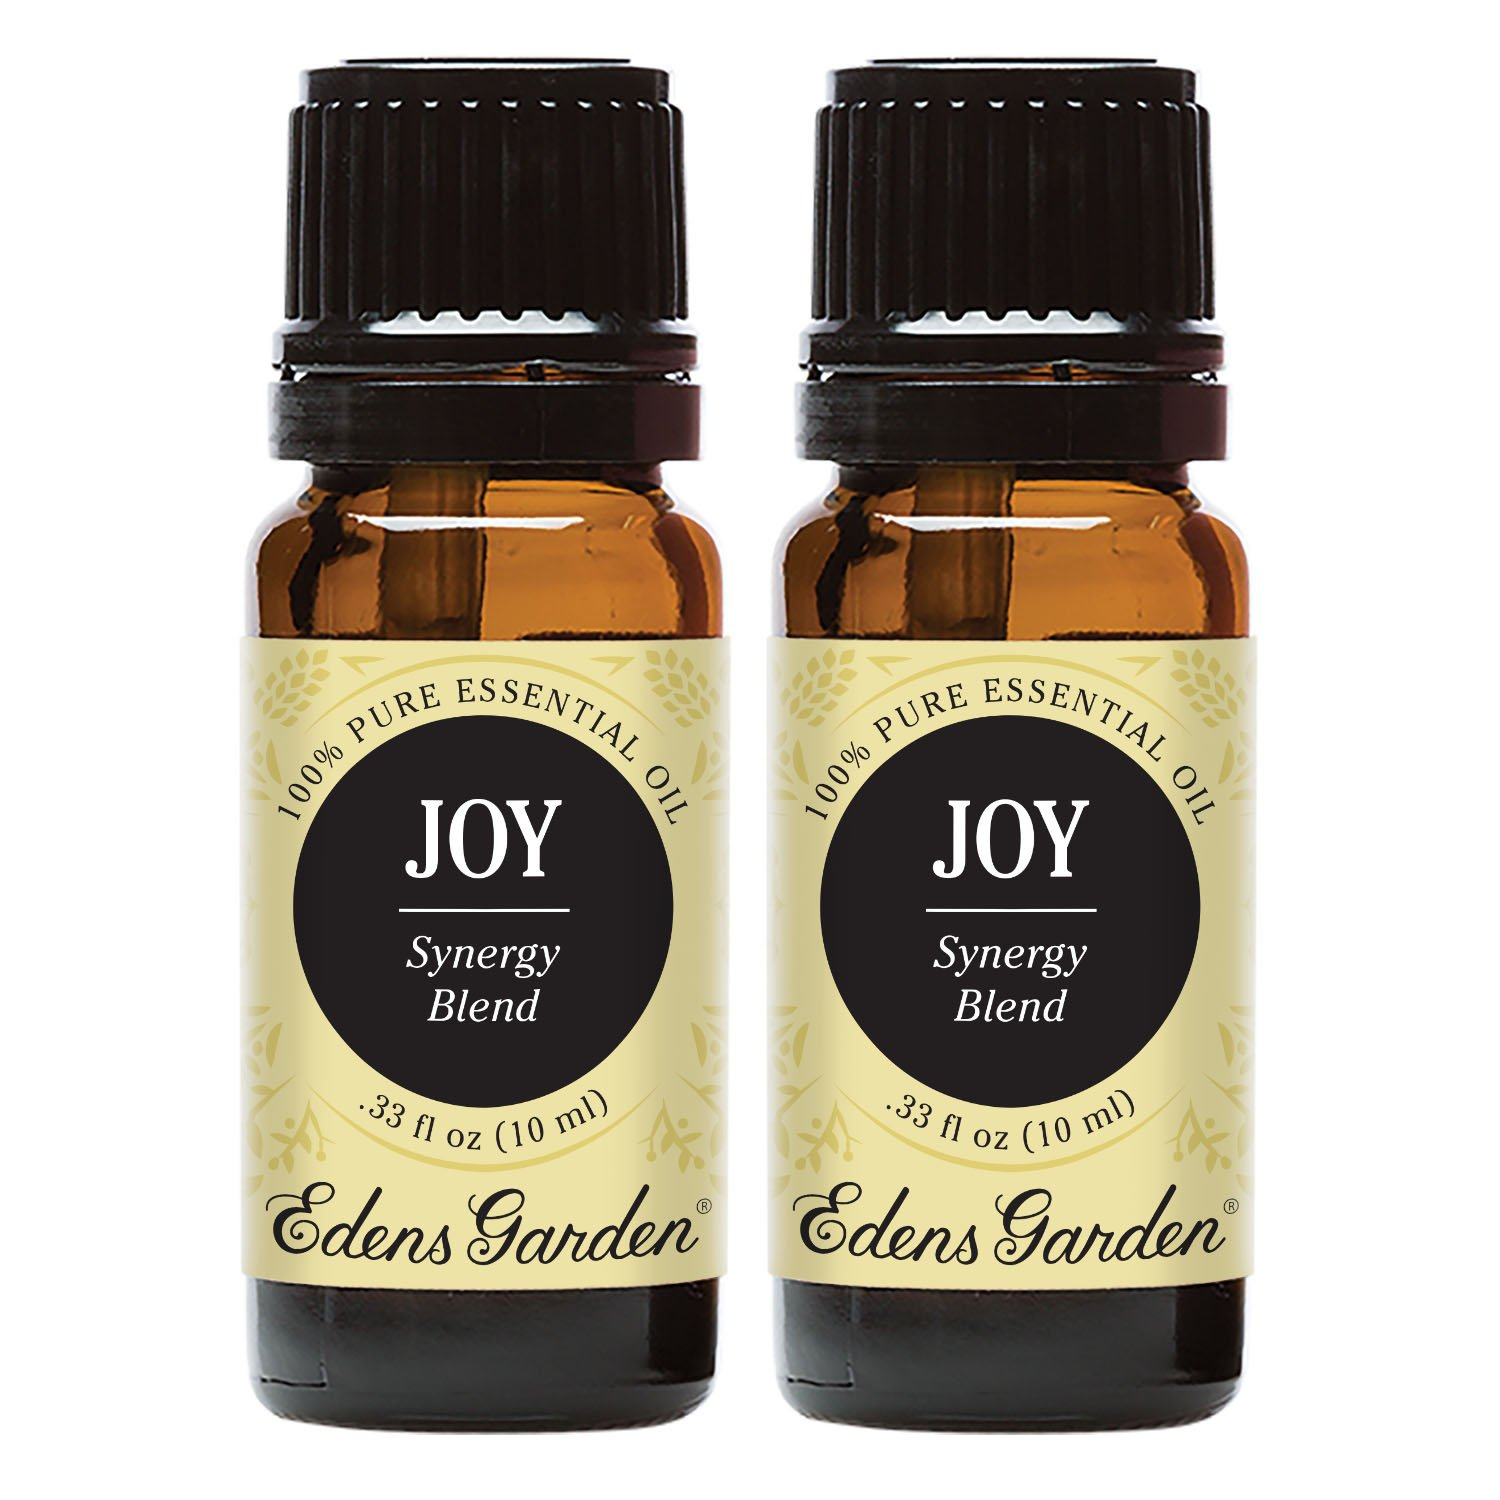 Edens Garden Joy Essential Oil Synergy Blend, 100% Pure Therapeutic Grade (Energy & Stress) 10 ml Value Pack